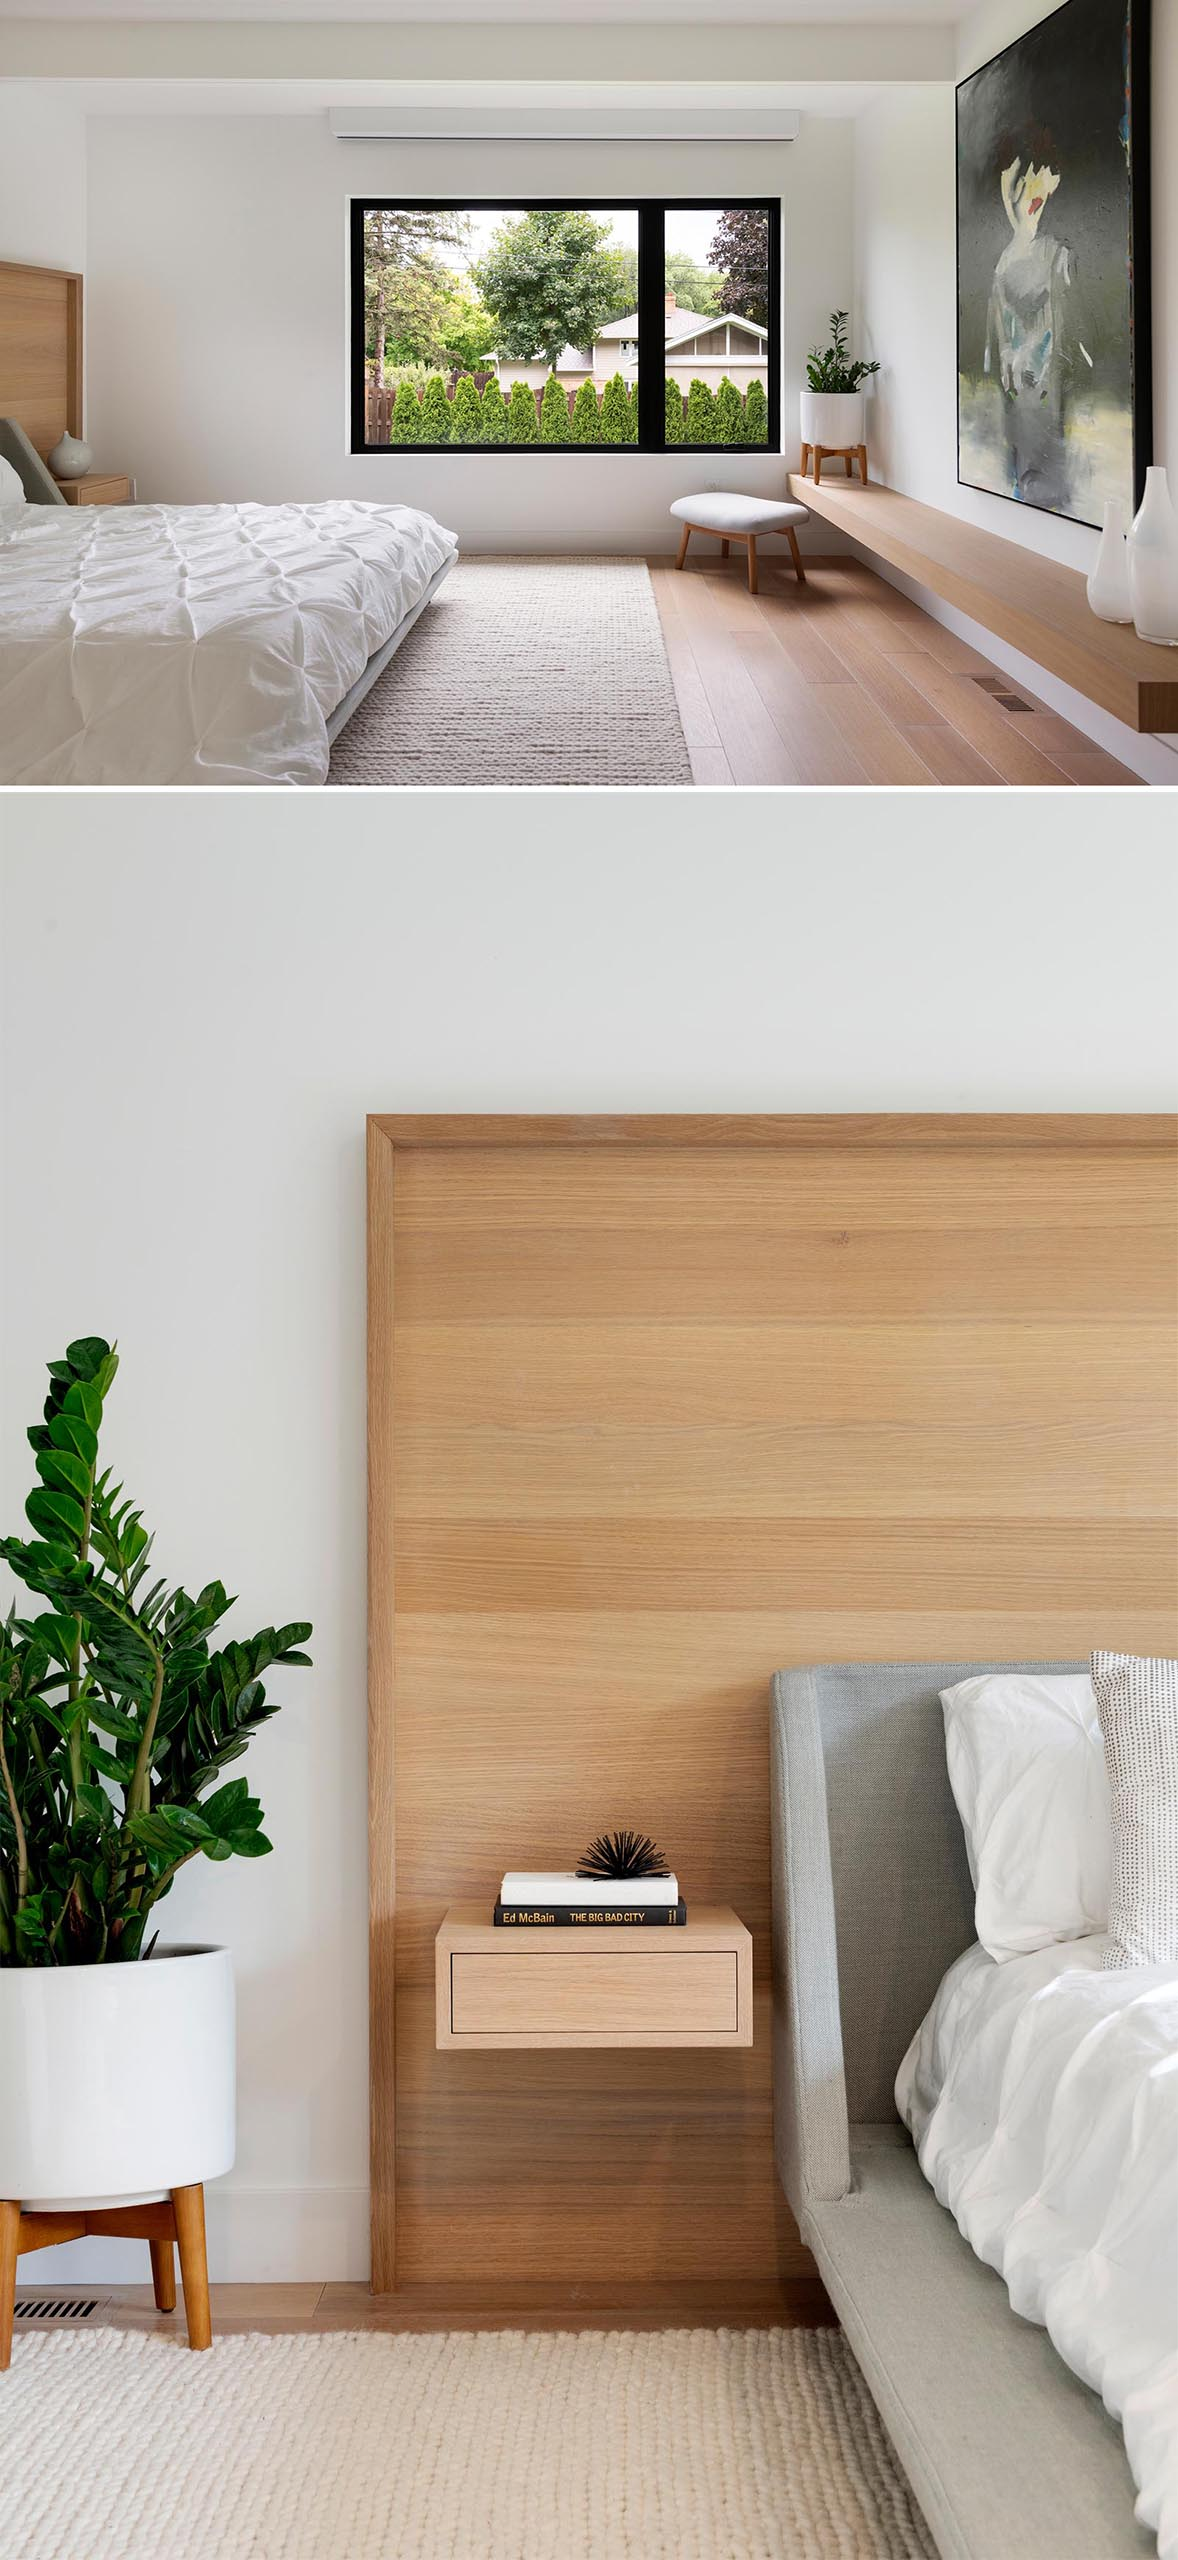 A modern bedroom with wood headboard and built-in side tables adds a natural element and complements the floating wood shelf on the opposite wall.